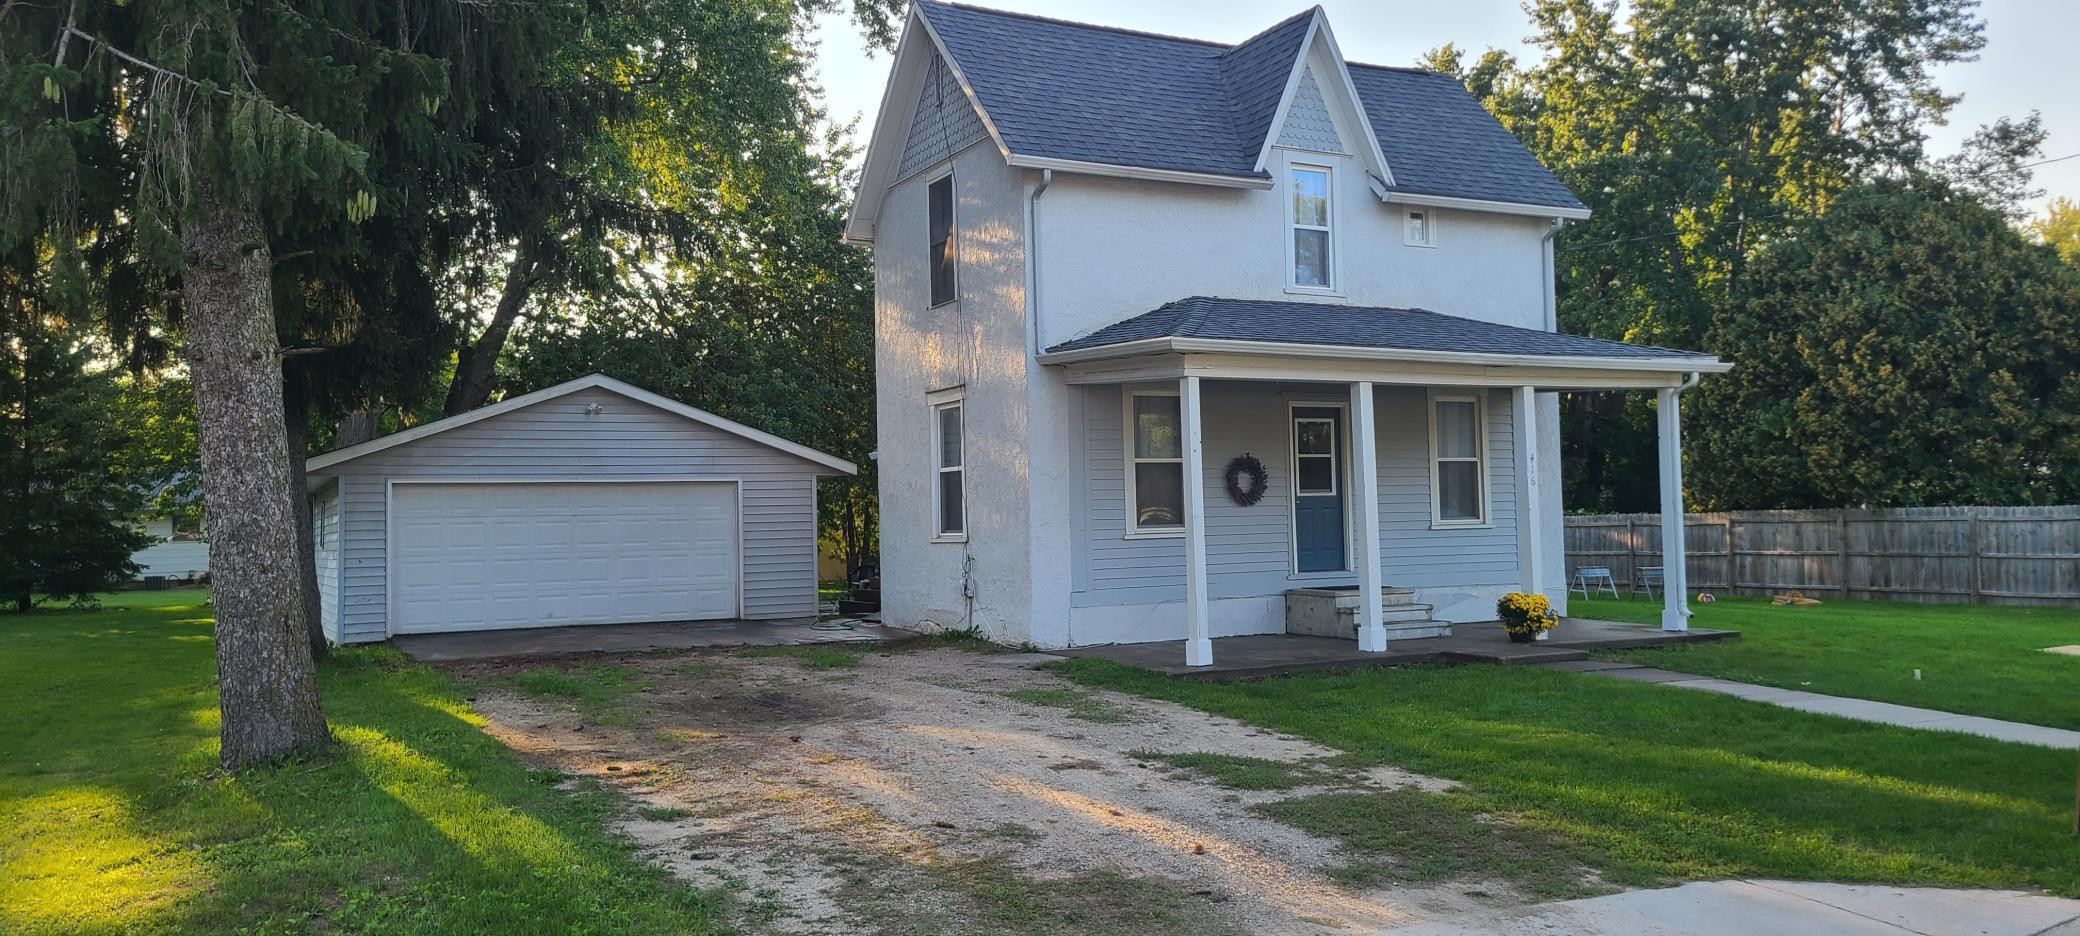 416 Highland Street, West Concord, MN 55985